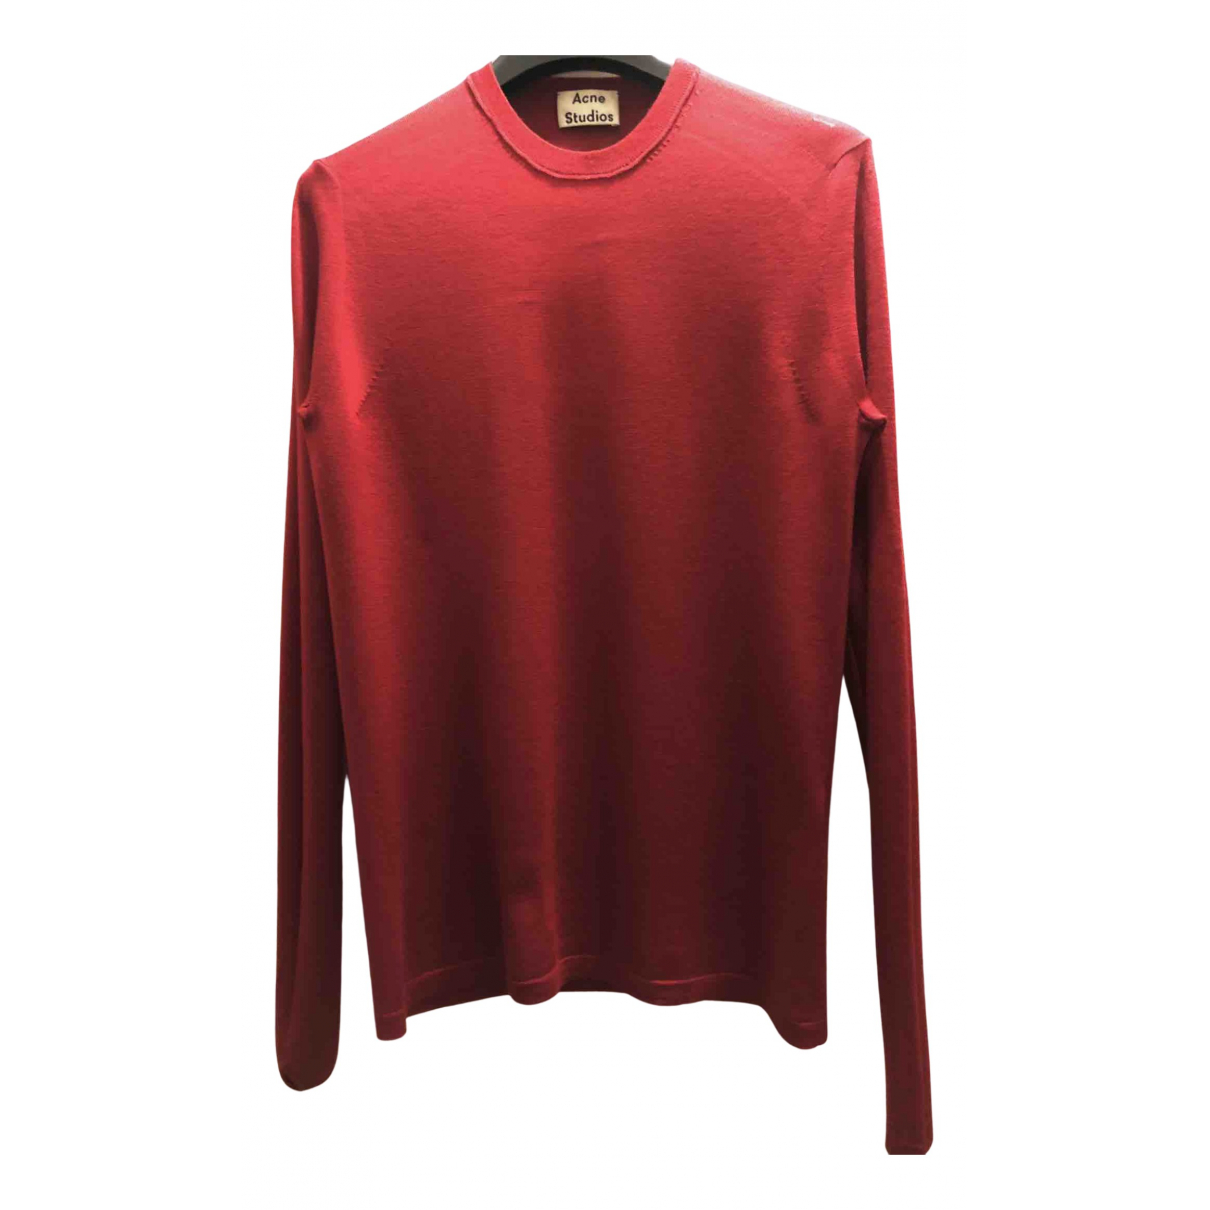 Acne Studios N Red Wool Knitwear for Women S International